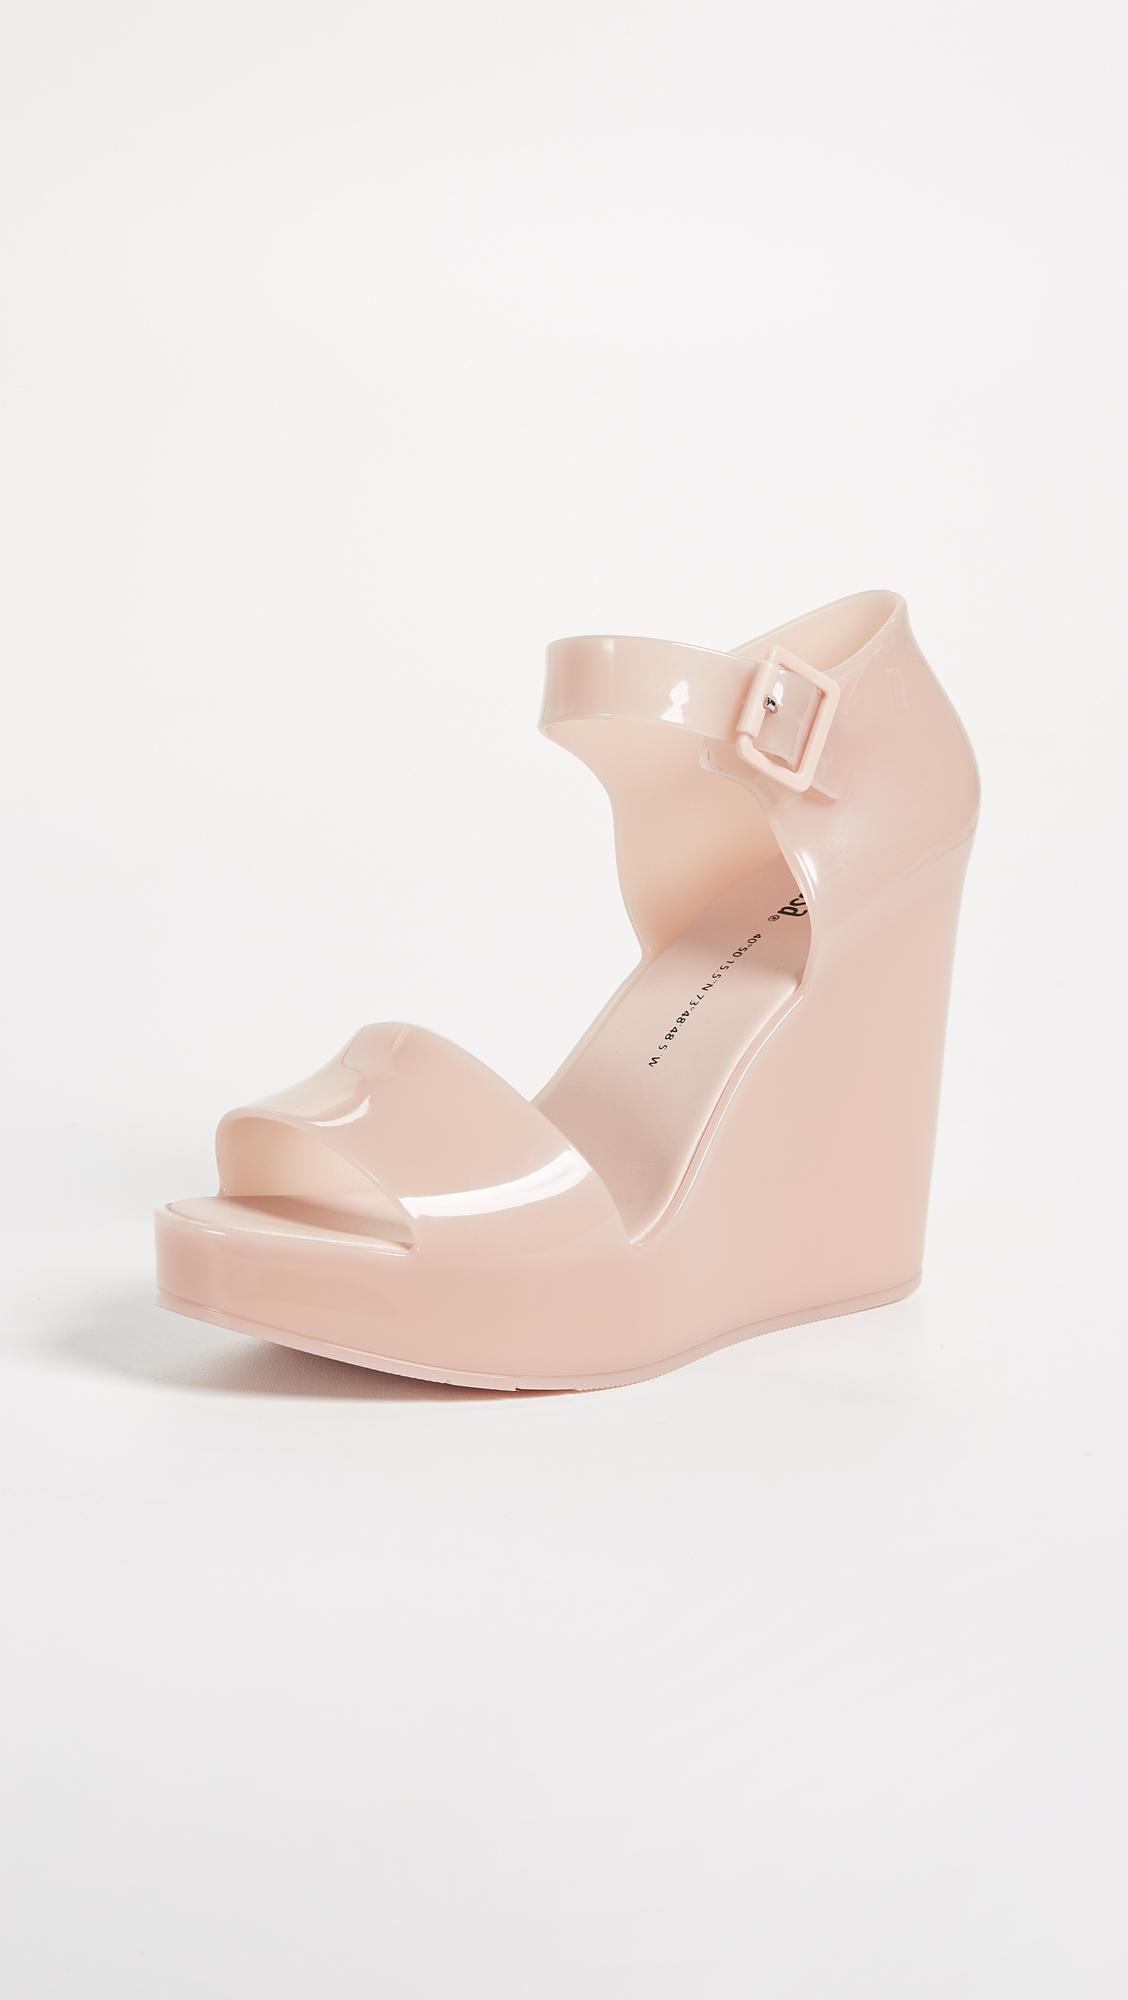 f29847b6d71 Lyst - Melissa Mar Wedge Sandals in Pink